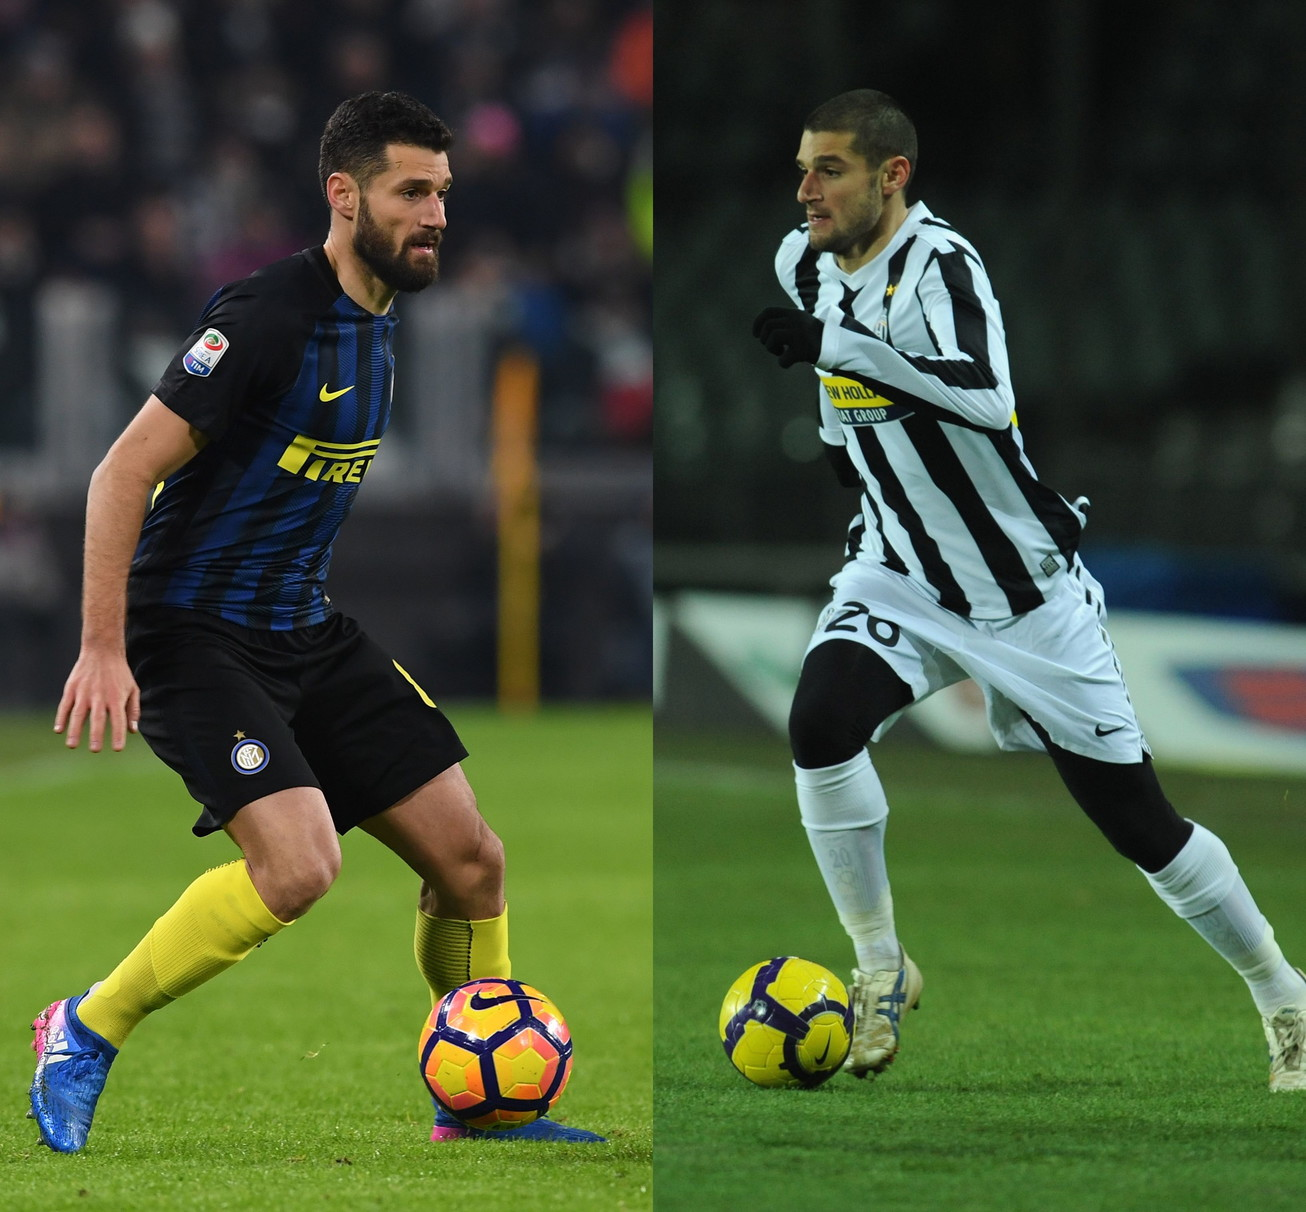 Antonio Candreva: Juve 2010, dal 2016 all'Inter